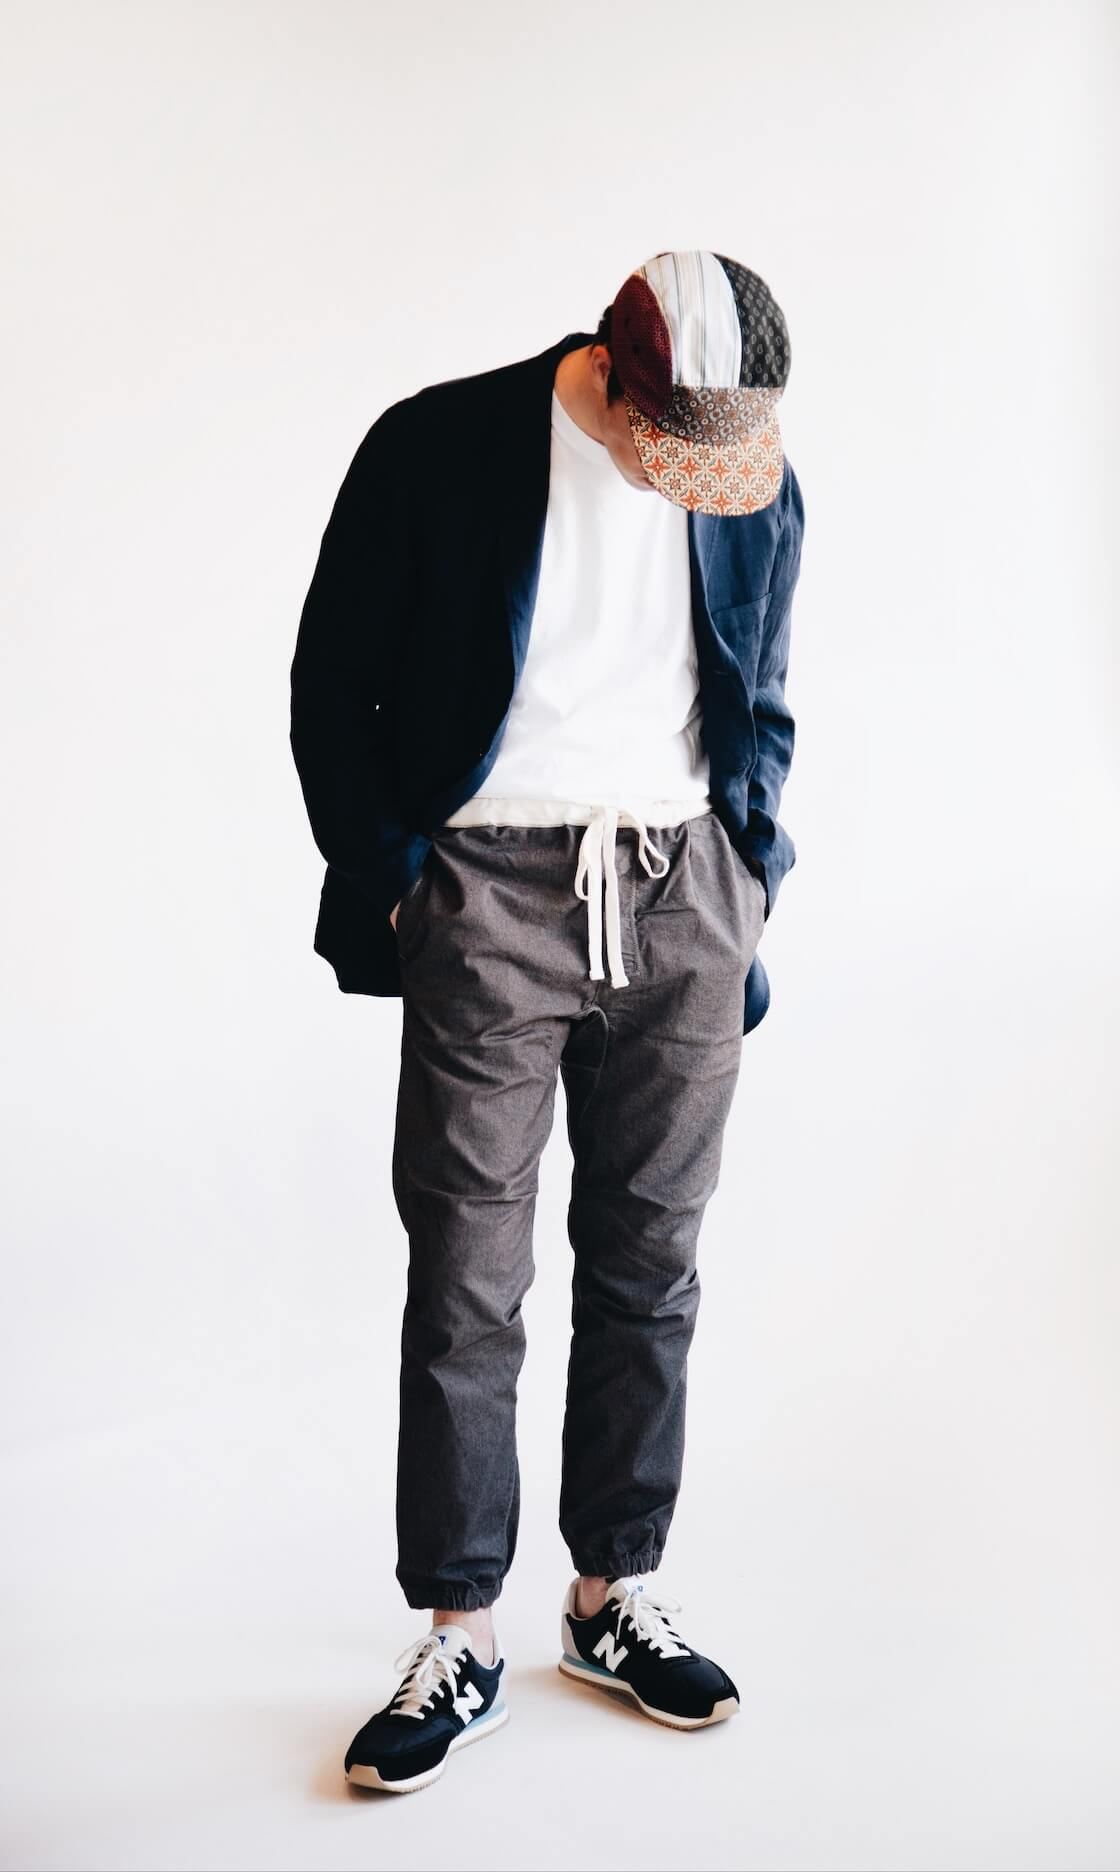 Beams plus 3 button shirt jacket, beams plus gym pants, beams plus 5 panel cap and new balance shoes on body